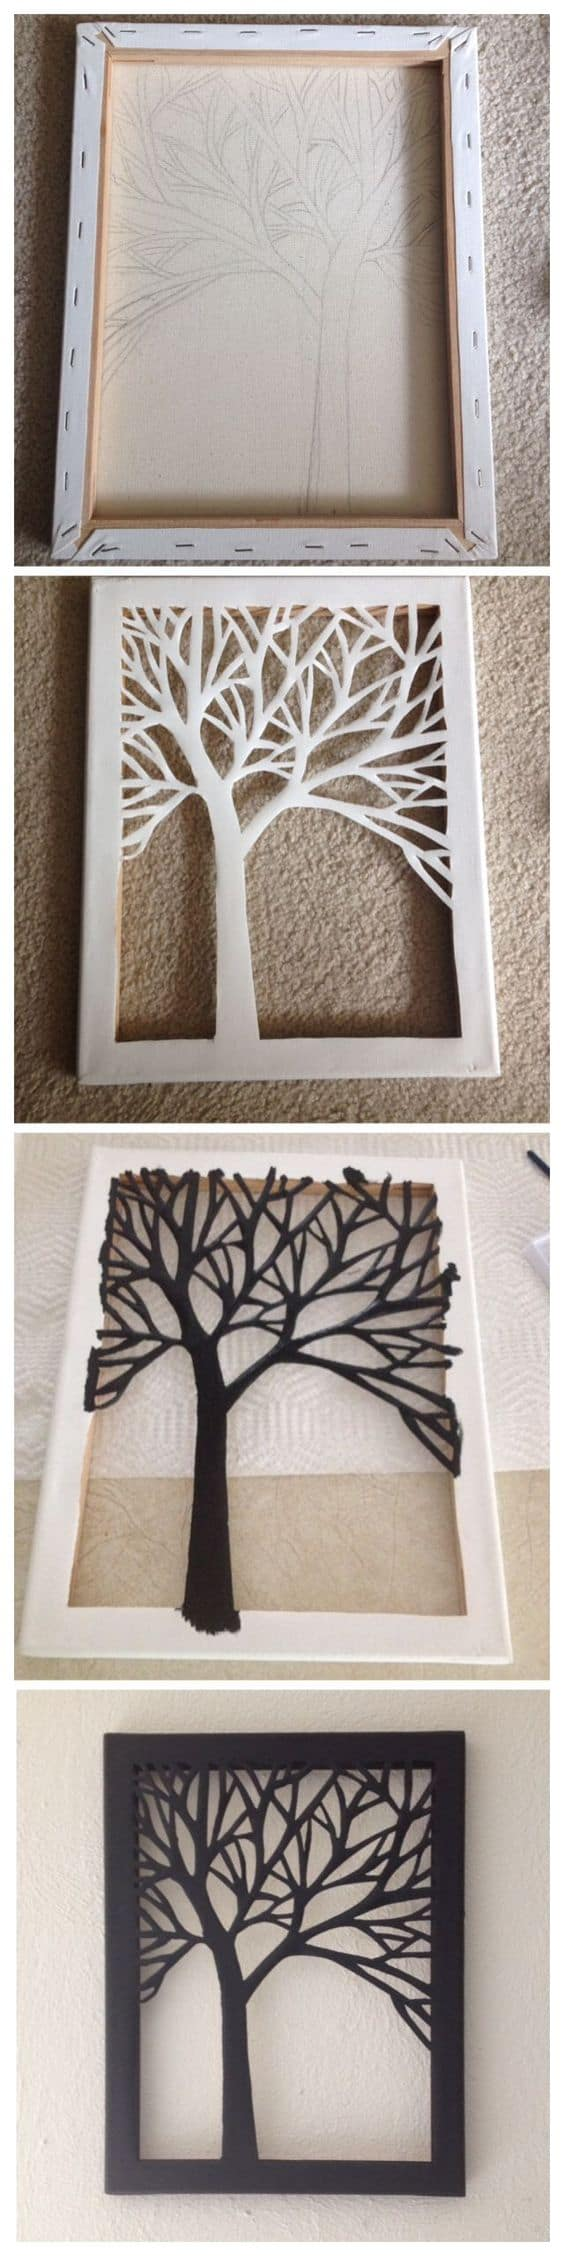 Painted cut out canvas tutorial